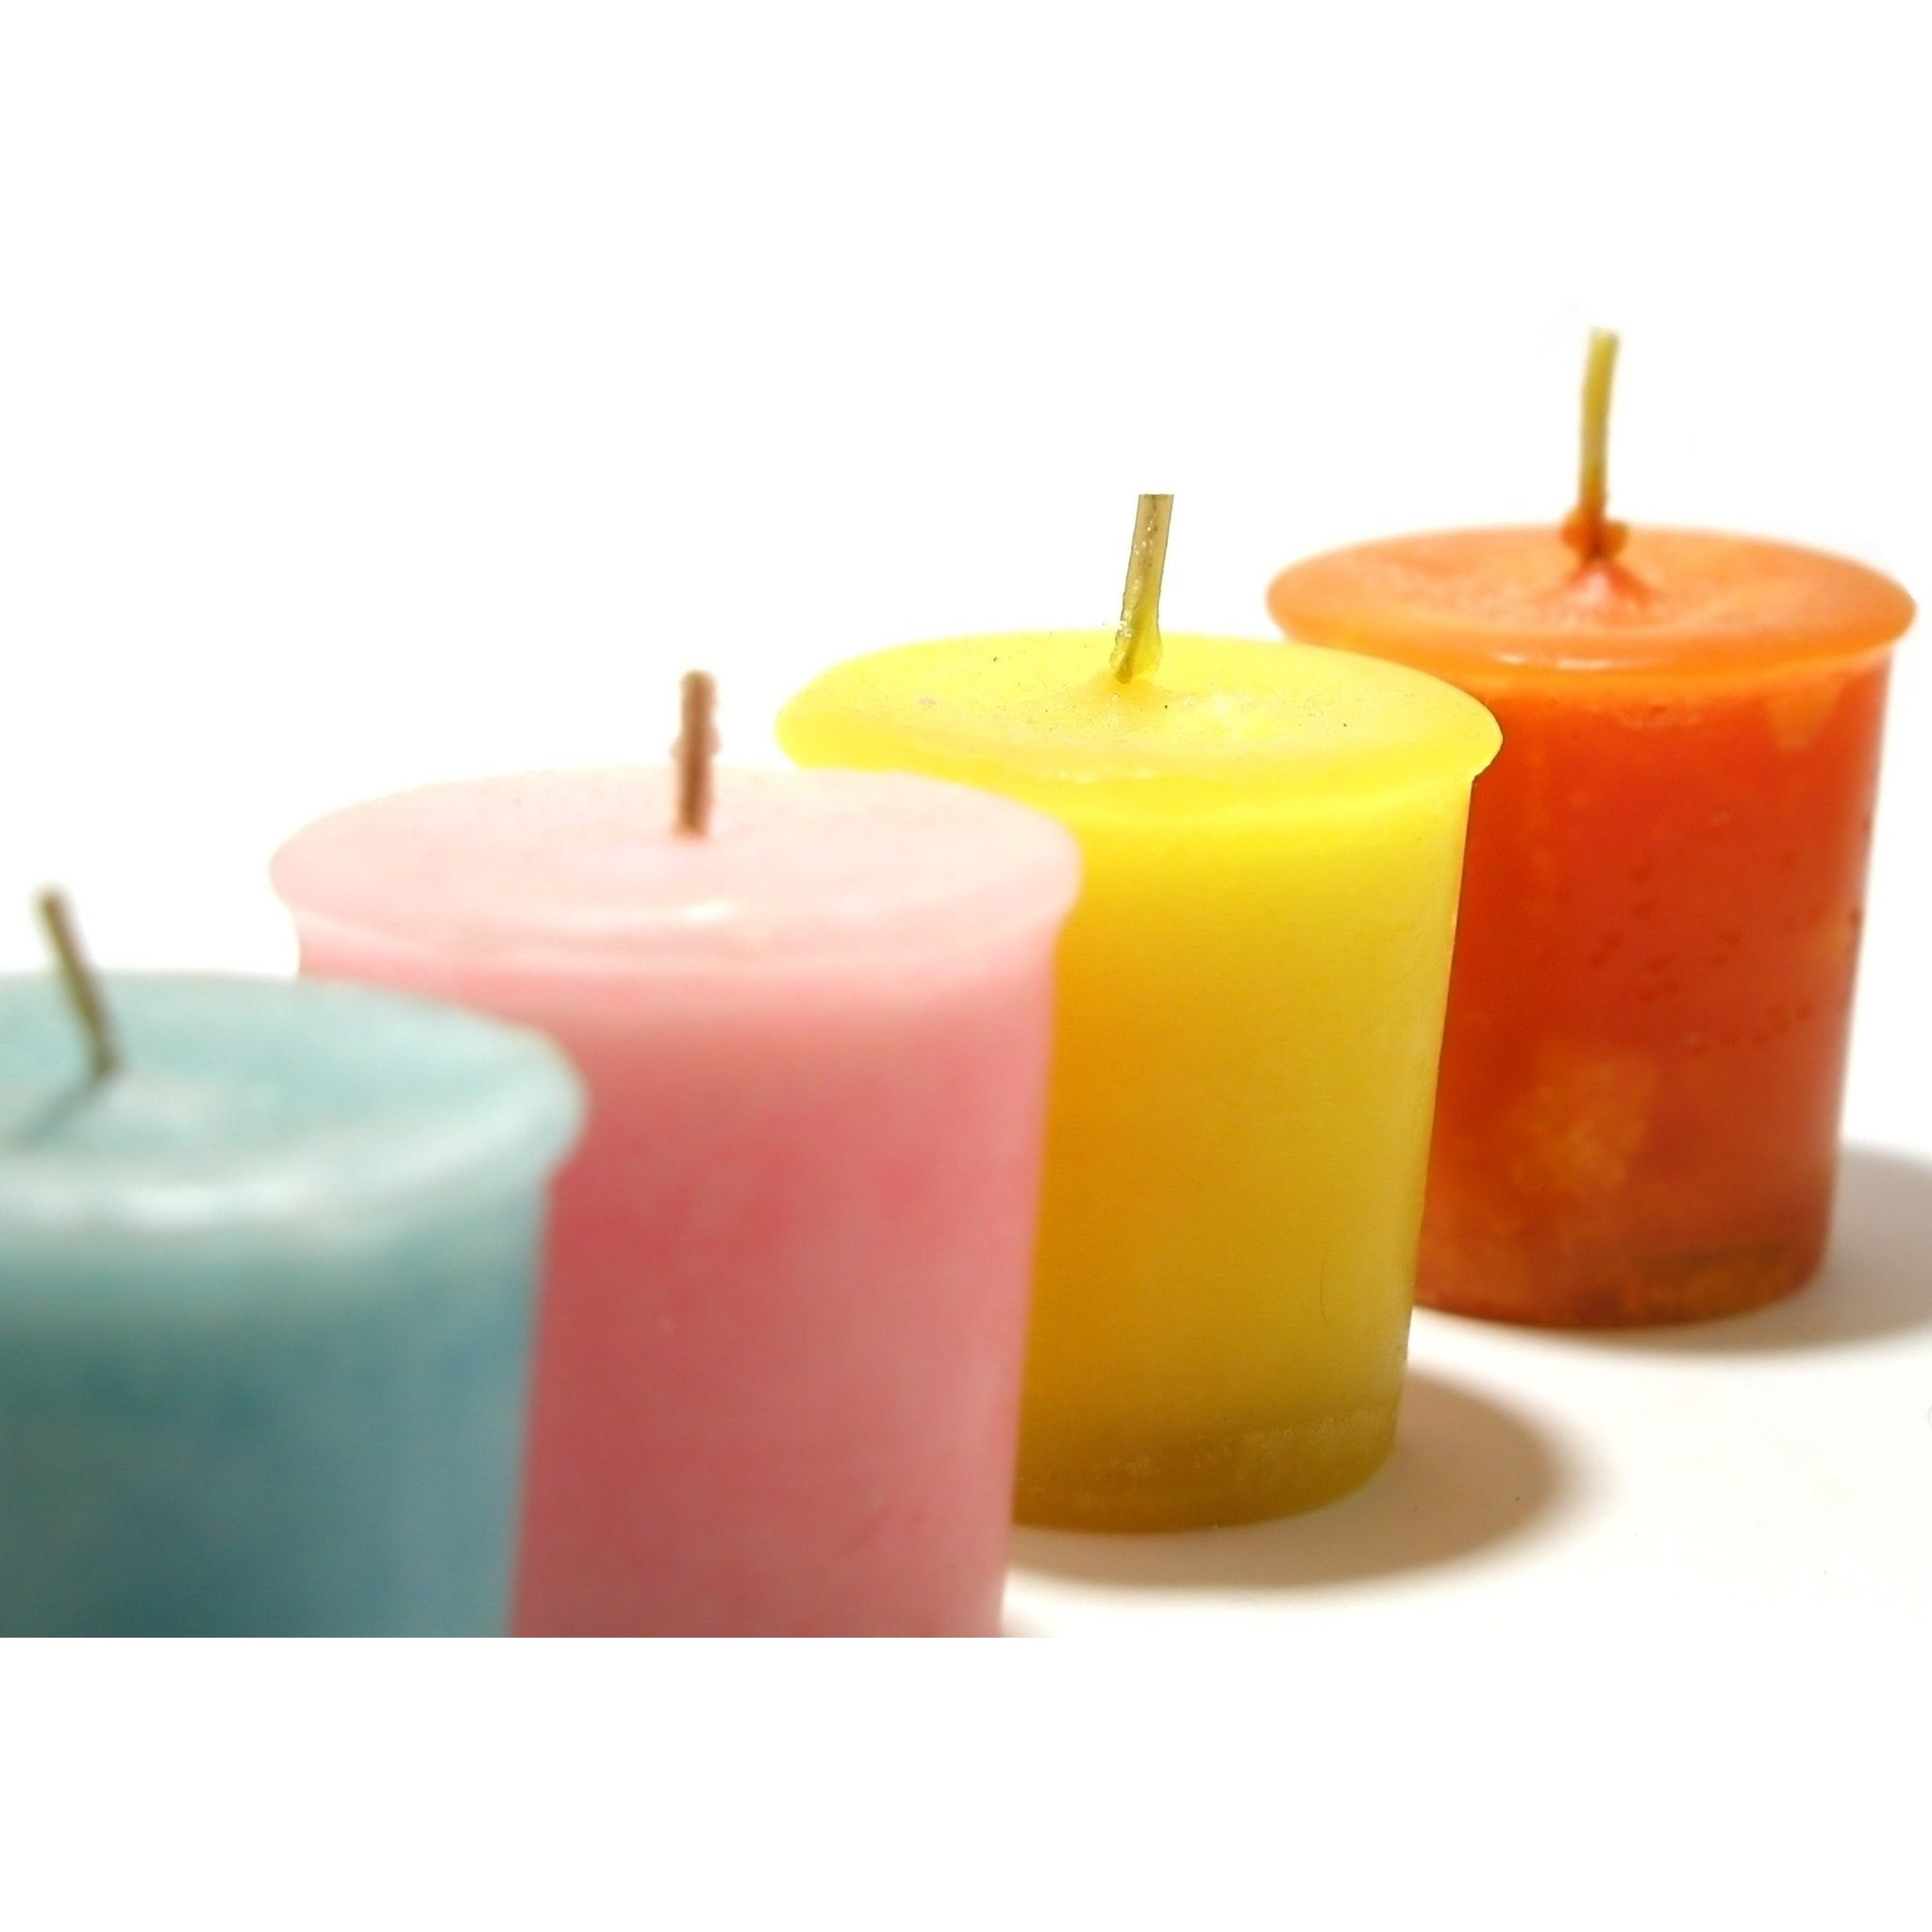 Comforting Coconut Natural Hand Poured Soy Candles - Votive-Single - Bella-Mia Naturals All Natural Soy Candles & Lip Balms - 8